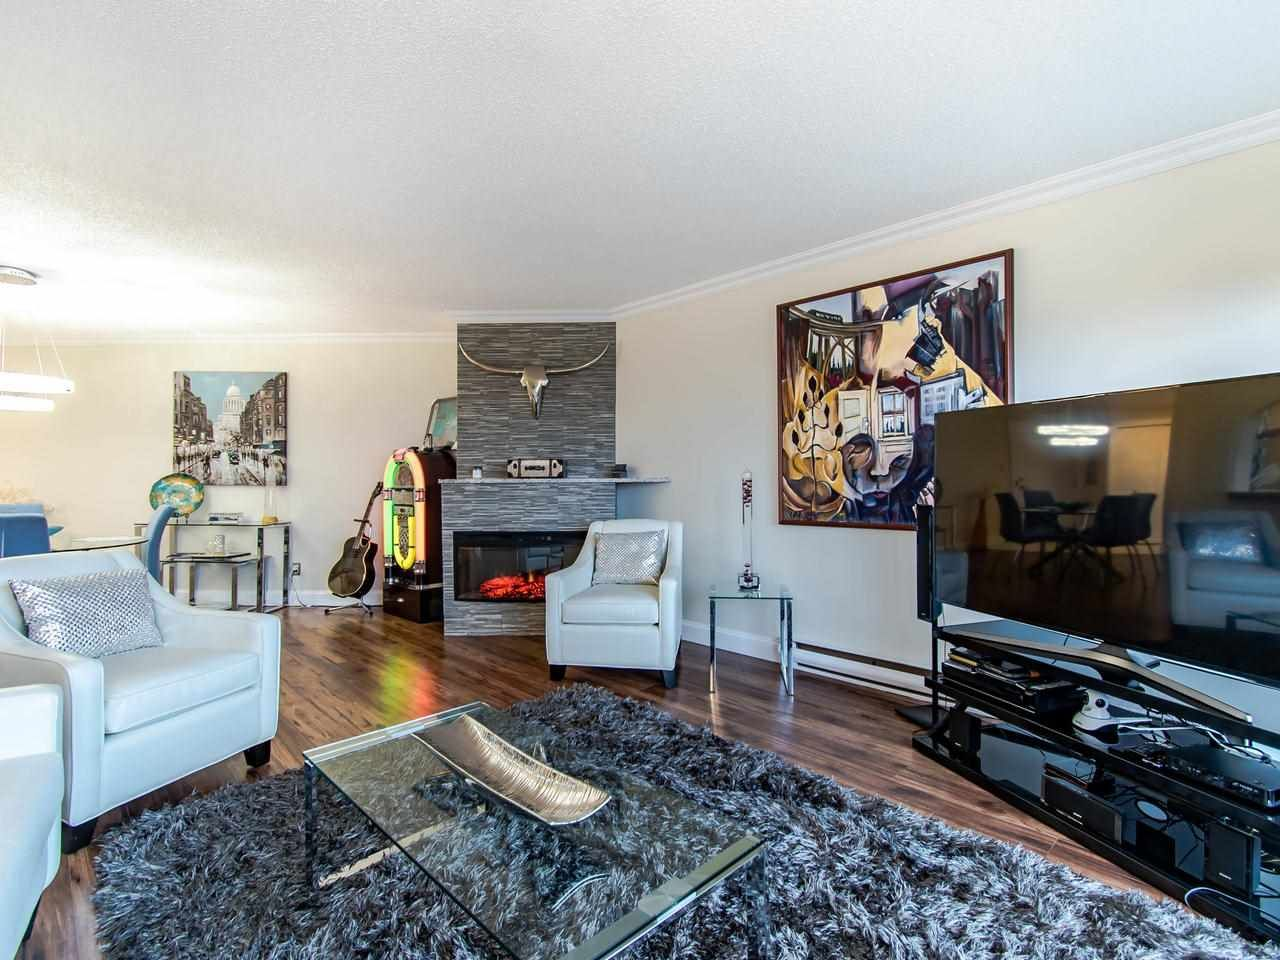 Main Photo: 507 3920 HASTINGS STREET in Burnaby: Willingdon Heights Condo for sale (Burnaby North)  : MLS®# R2443154